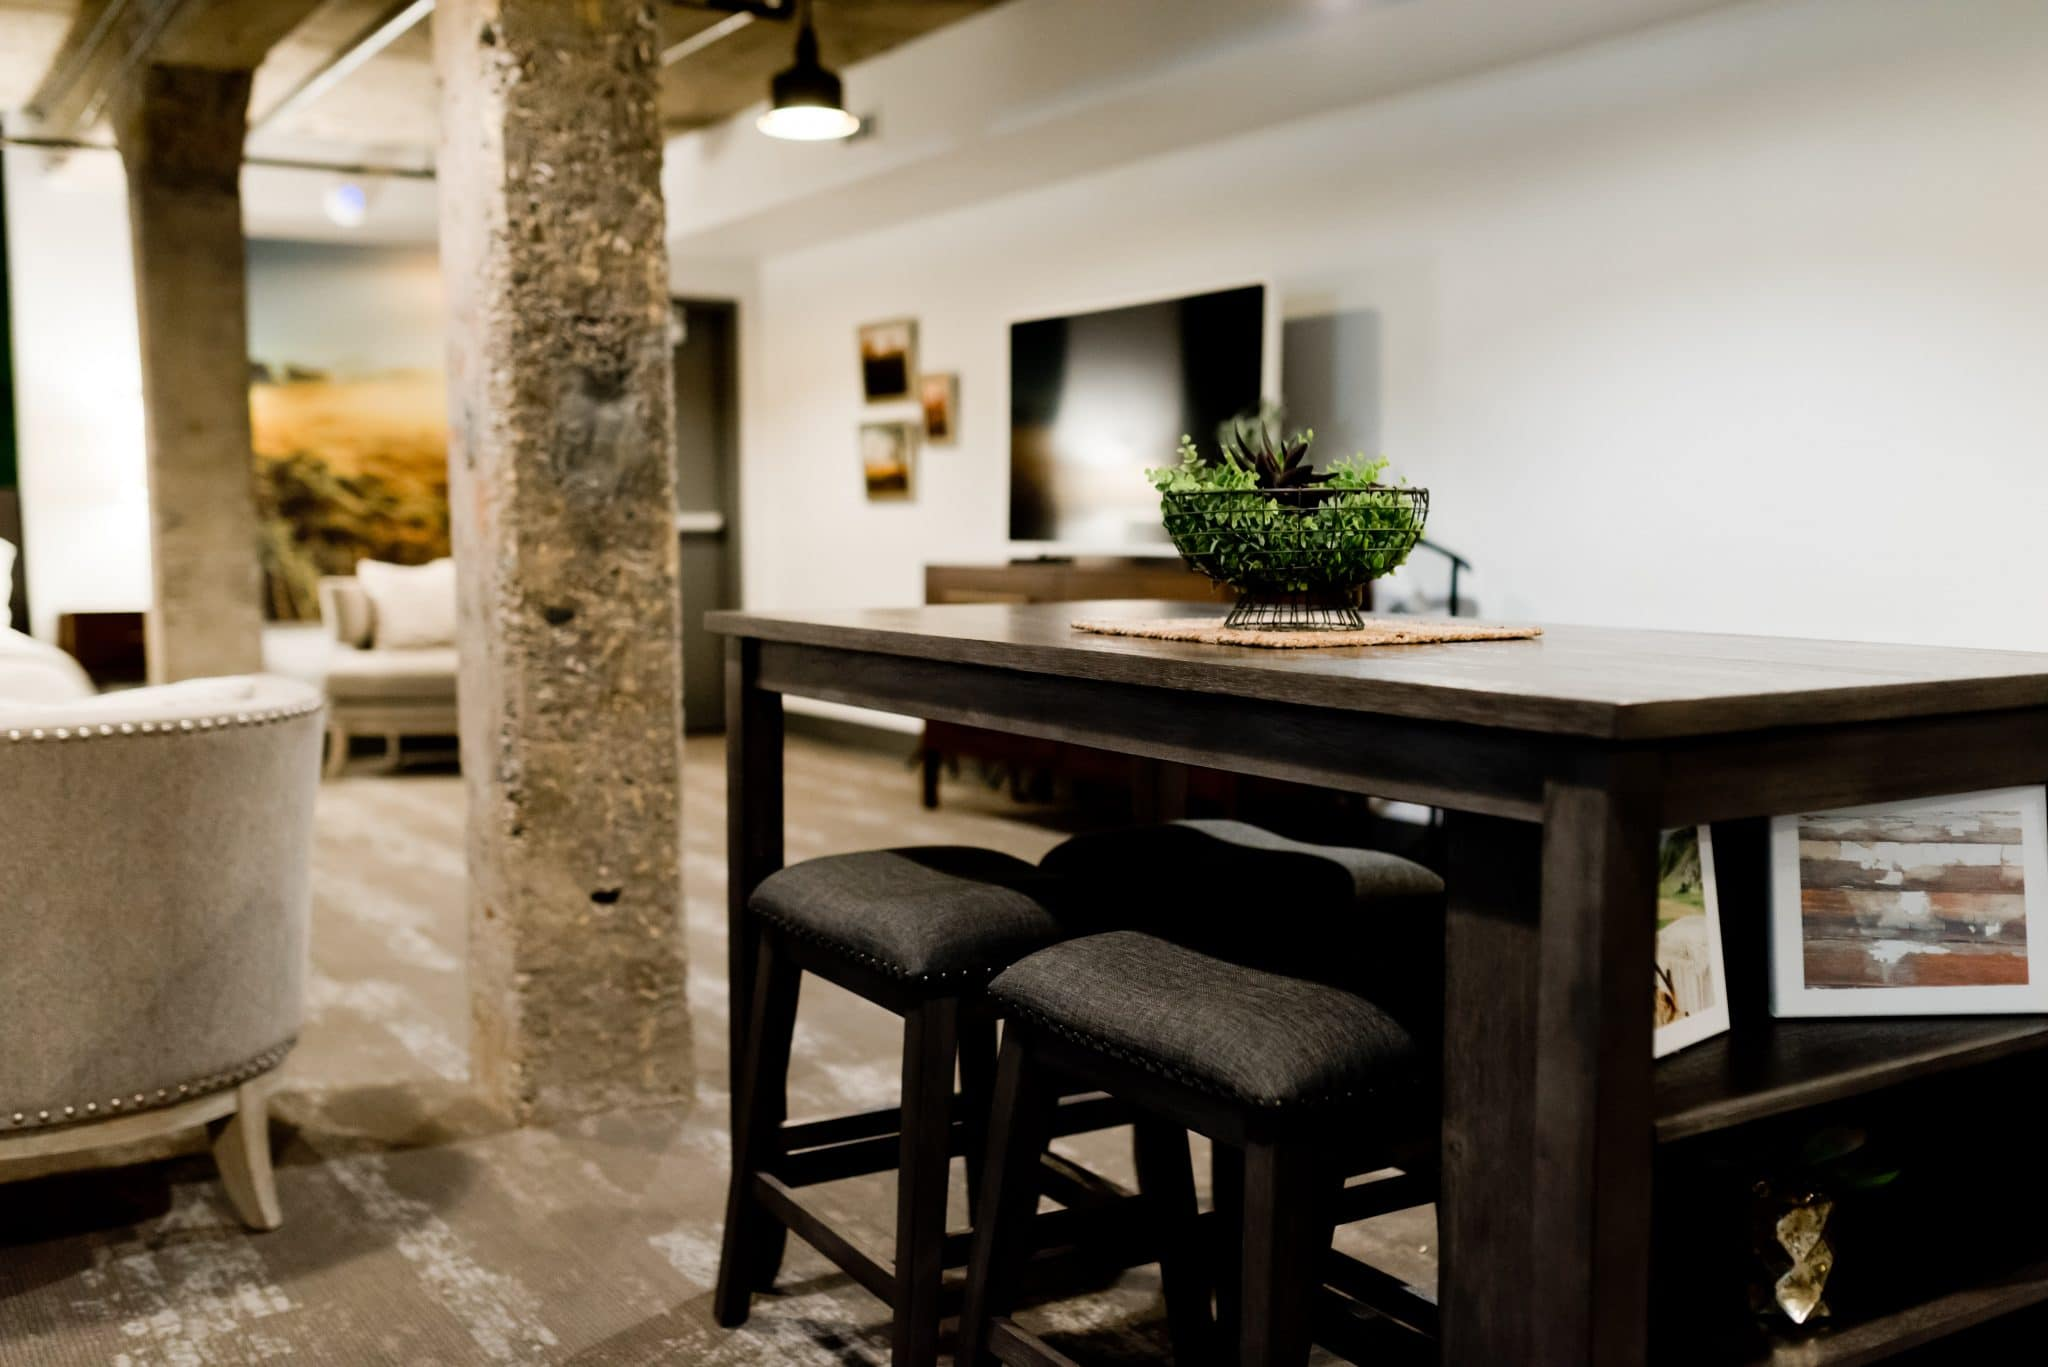 Dining-area-with-fine-wood-and-stone-furniture-and-floors-need-specialized-cleaning-methods